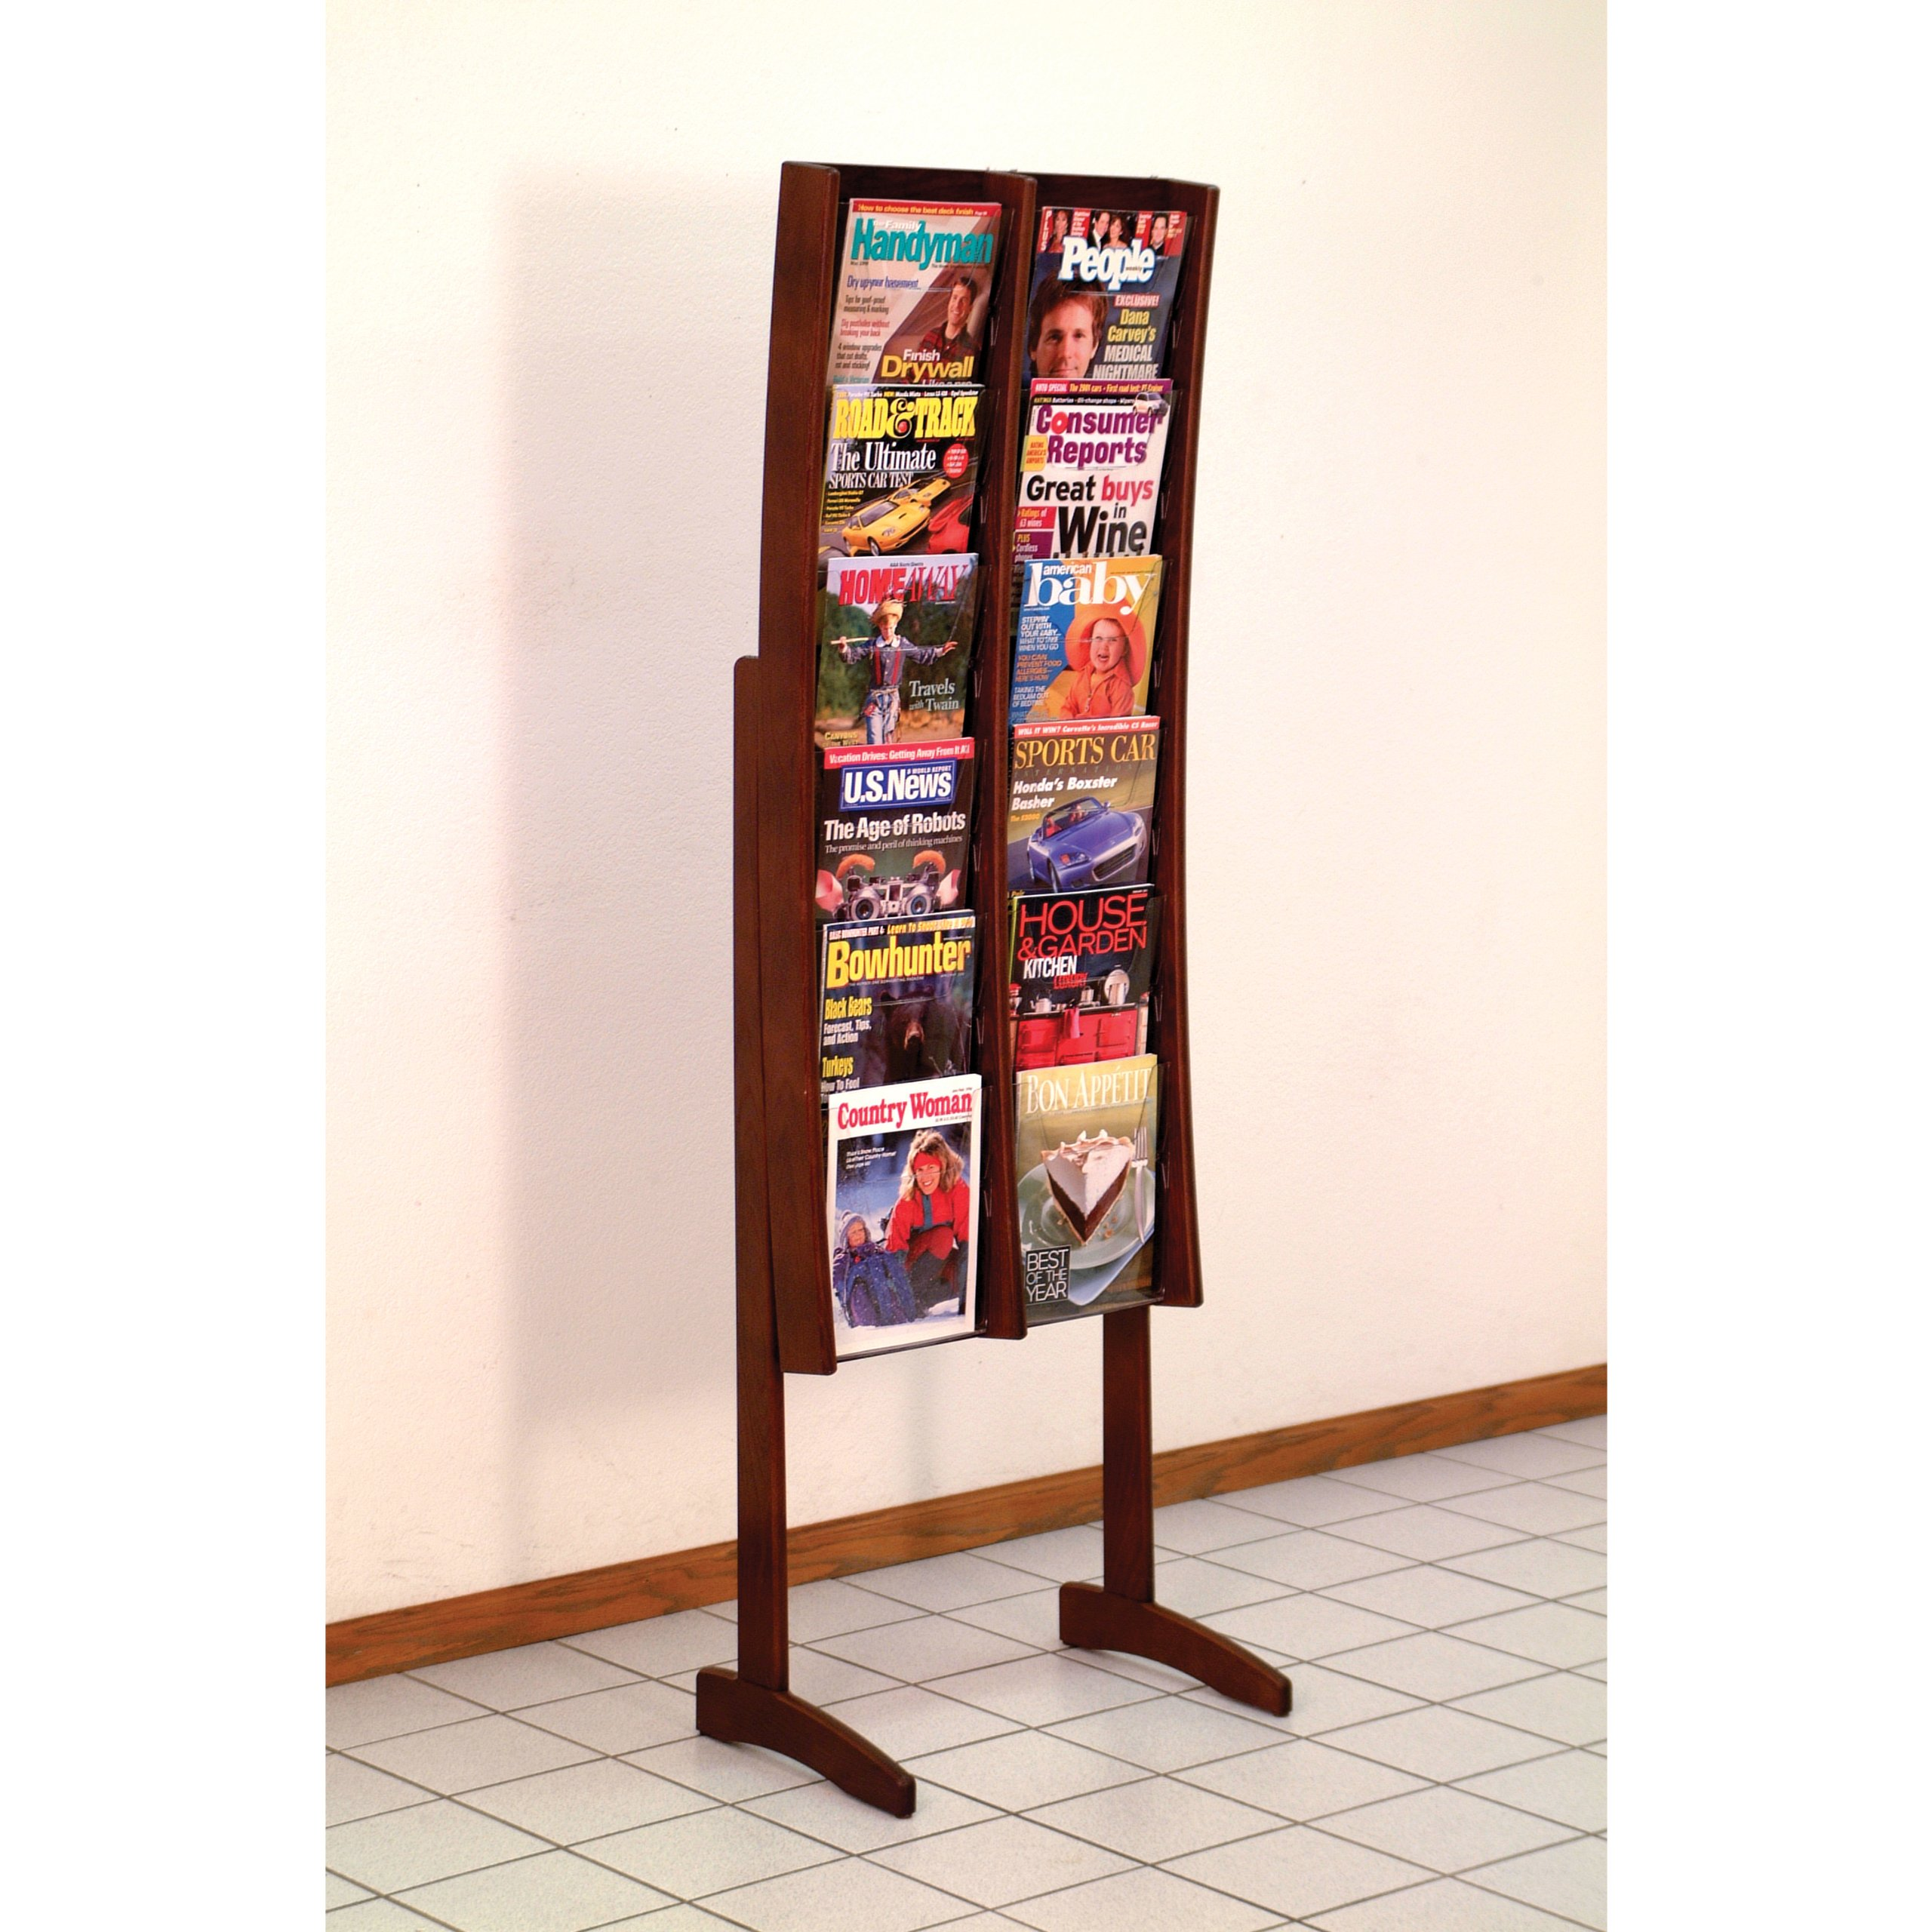 DMD Magazine and Literature Floor Display Rack, Curved, 12 Pocket, Solid Oak and Acrylic, Mahogany Wood Finish